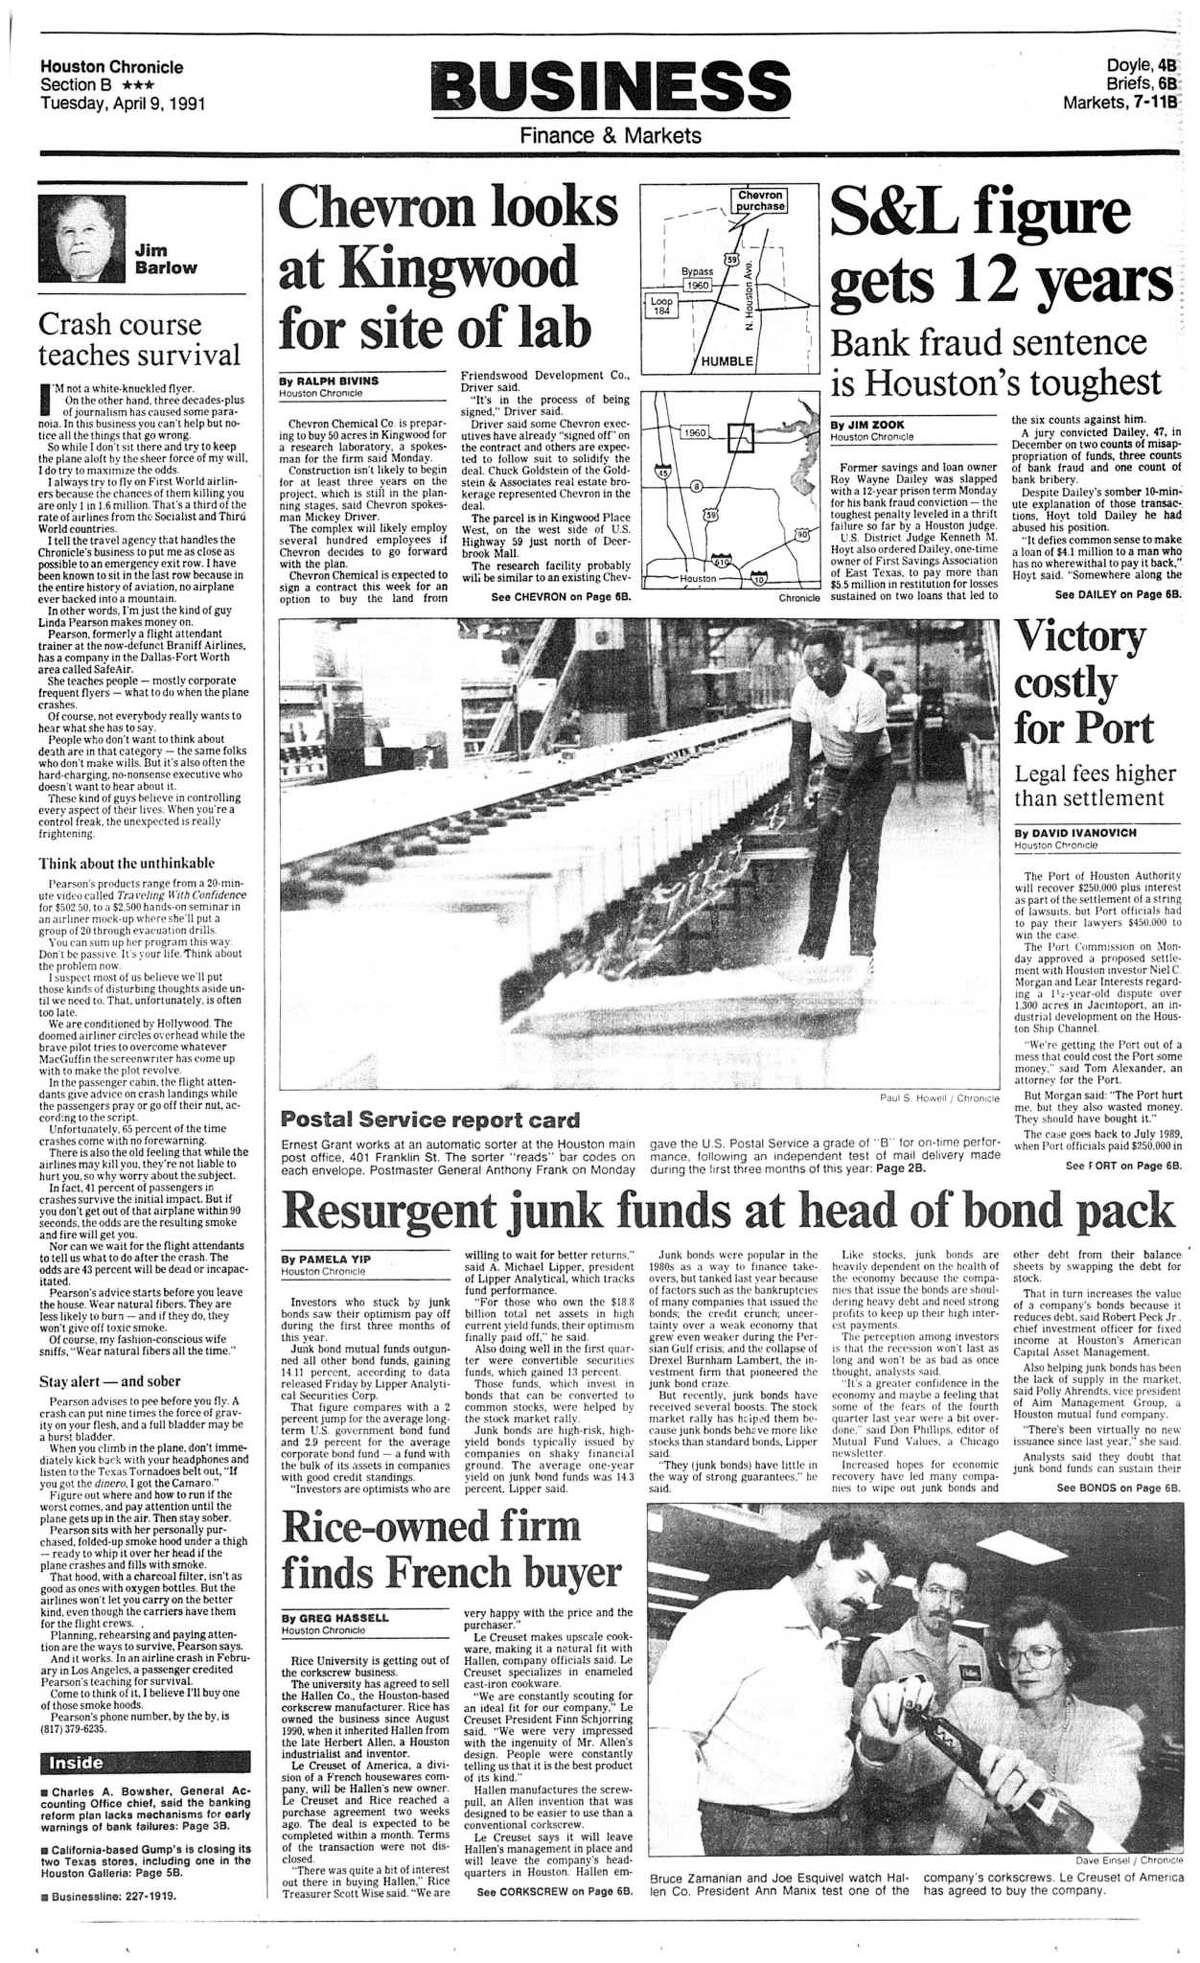 Houston Chronicle inside page (HISTORIC) Â?- April 9, 1991 - section B, page 1. Rice-owned firm finds French buyer (HALLEN CO)